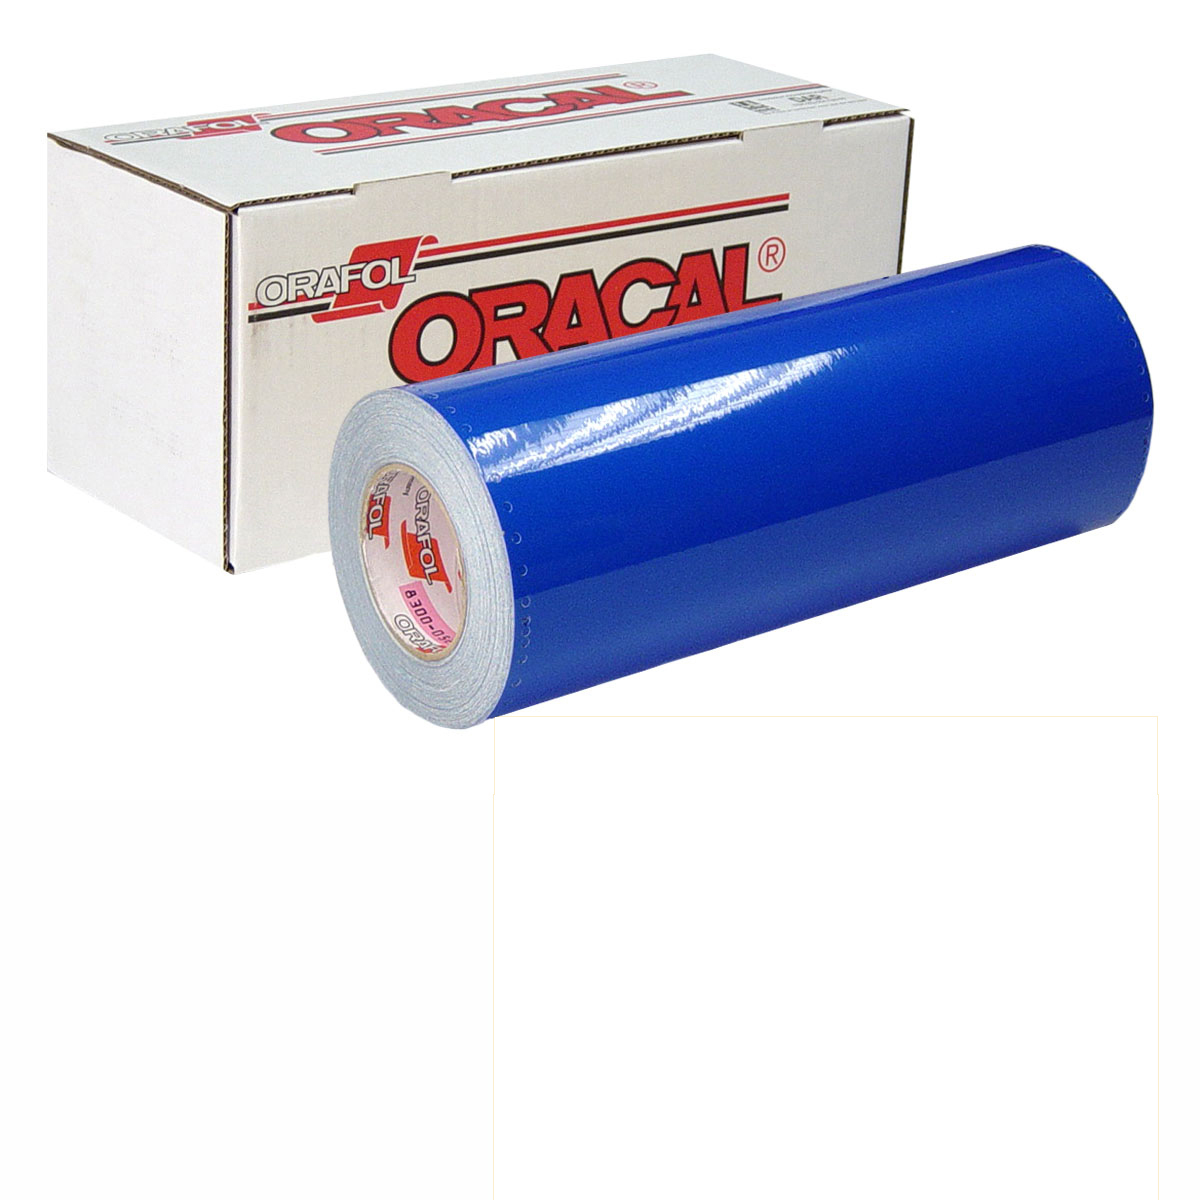 ORACAL 631 30in X 50yd 010 White